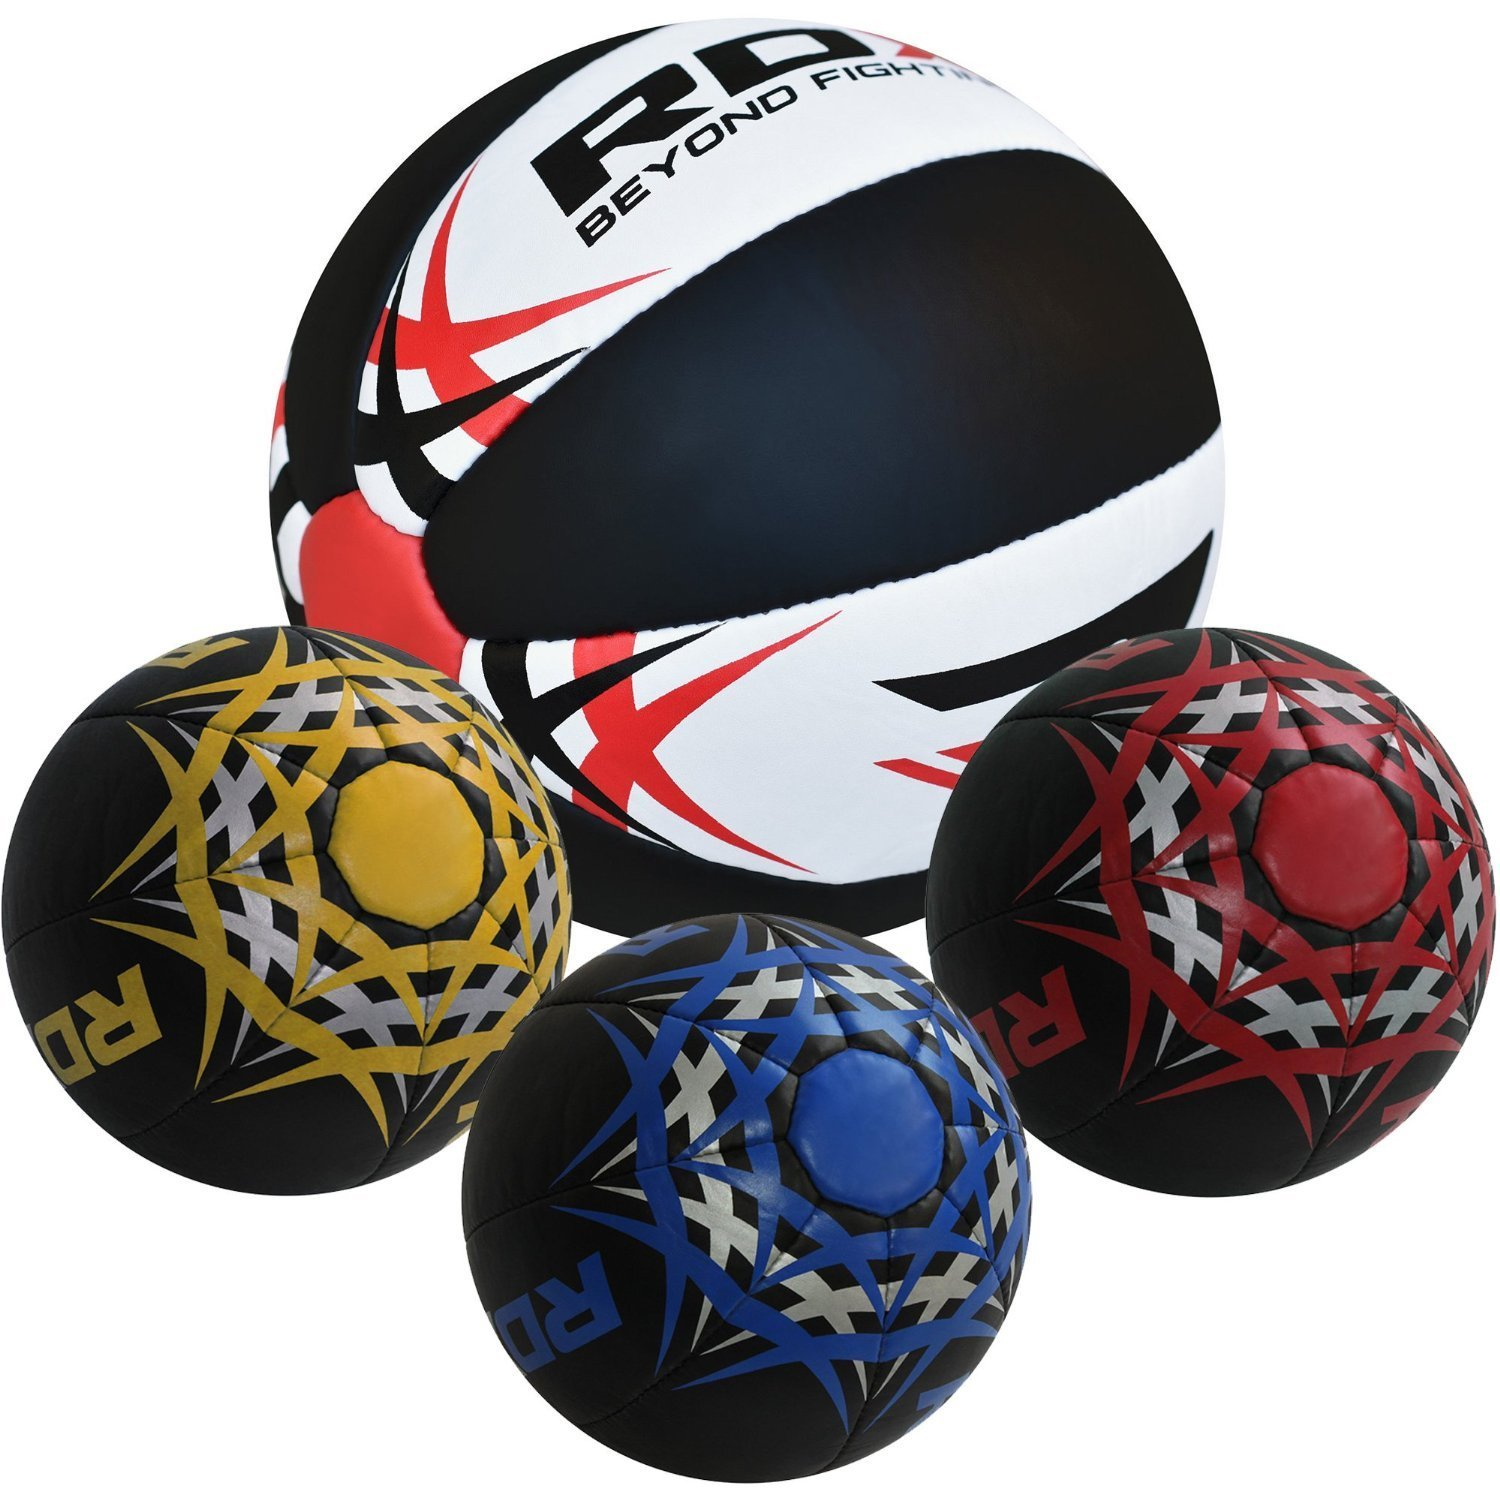 Cheap Heavy Medicine Ball Find Deals On Line At Gym Grip 10kg Get Quotations Rdx Crossfit Weighted Fitness Training Exercise Workout Slam 5kg 8kg10kg